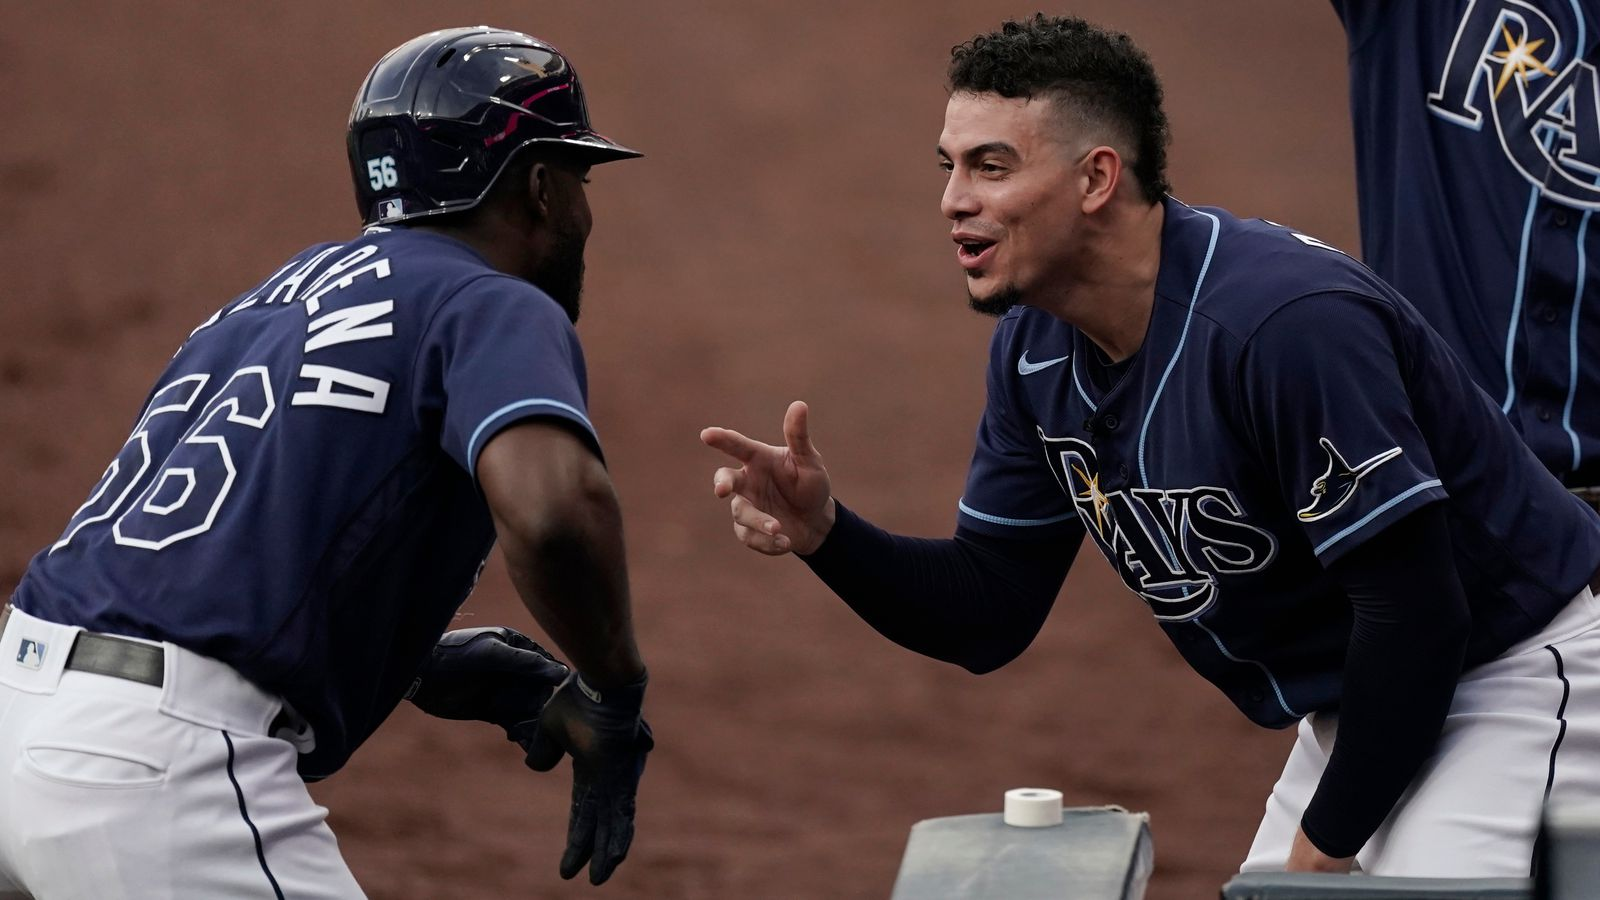 Just another inexplicable, yet completely normal, Rays win